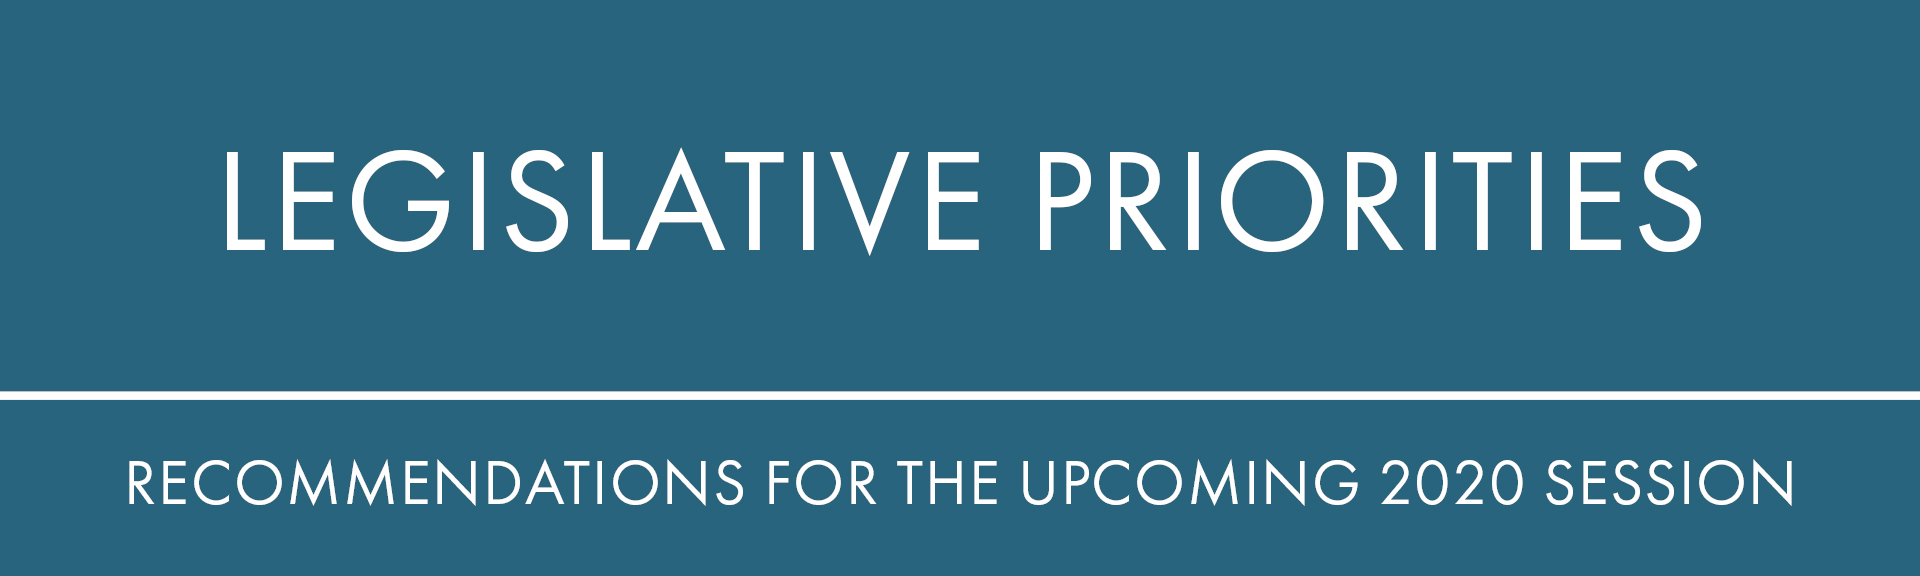 legislative priorities recommendations for the upcoming 2020 session chamber 2019 commerce greater vancouver portland oregon public affairs committee southwest washington